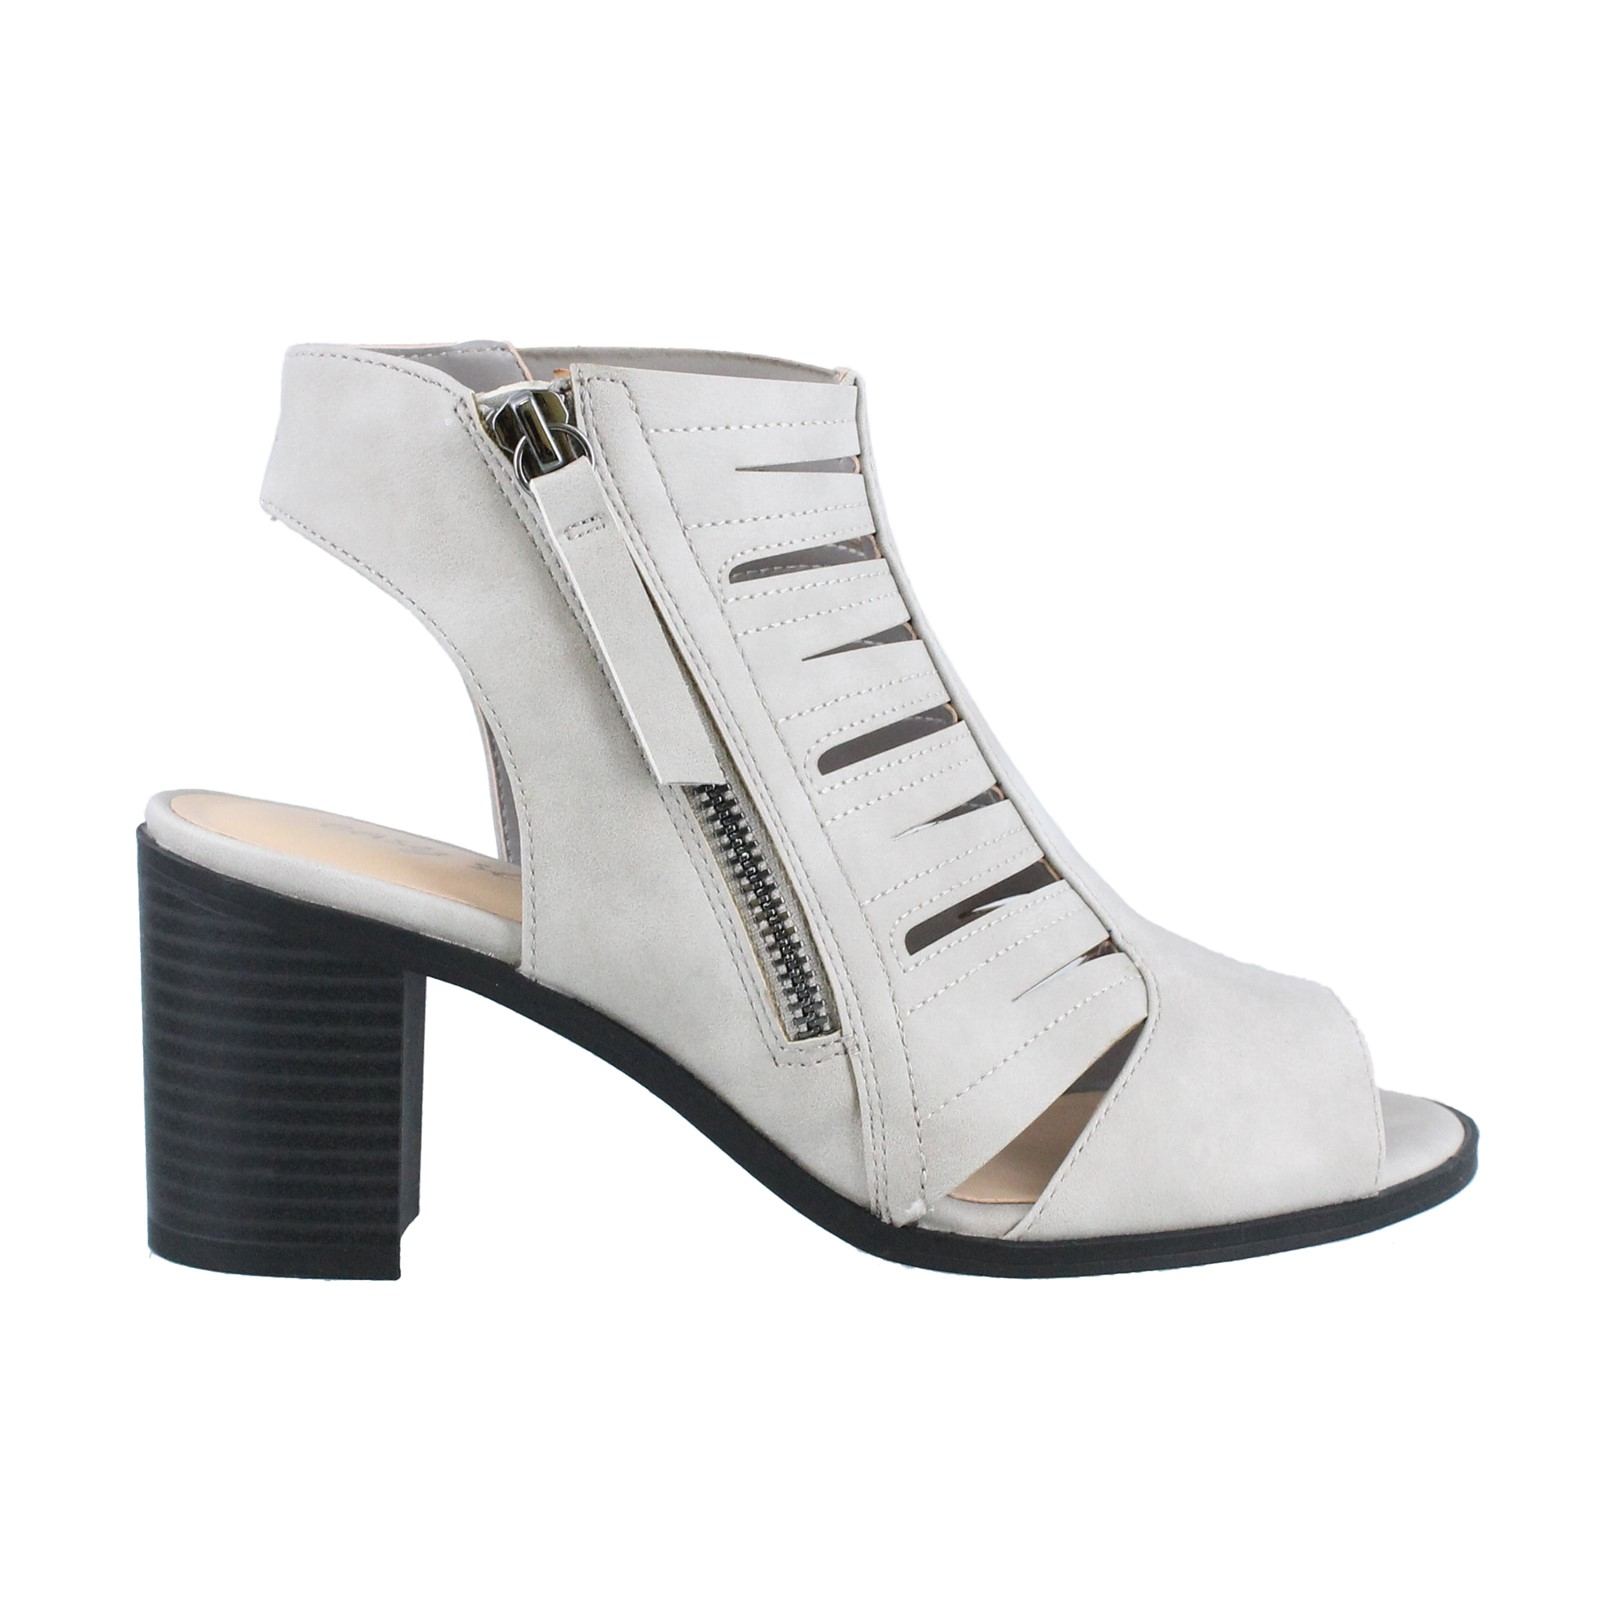 Women's Easy Street, Karlie High Heel Sandal